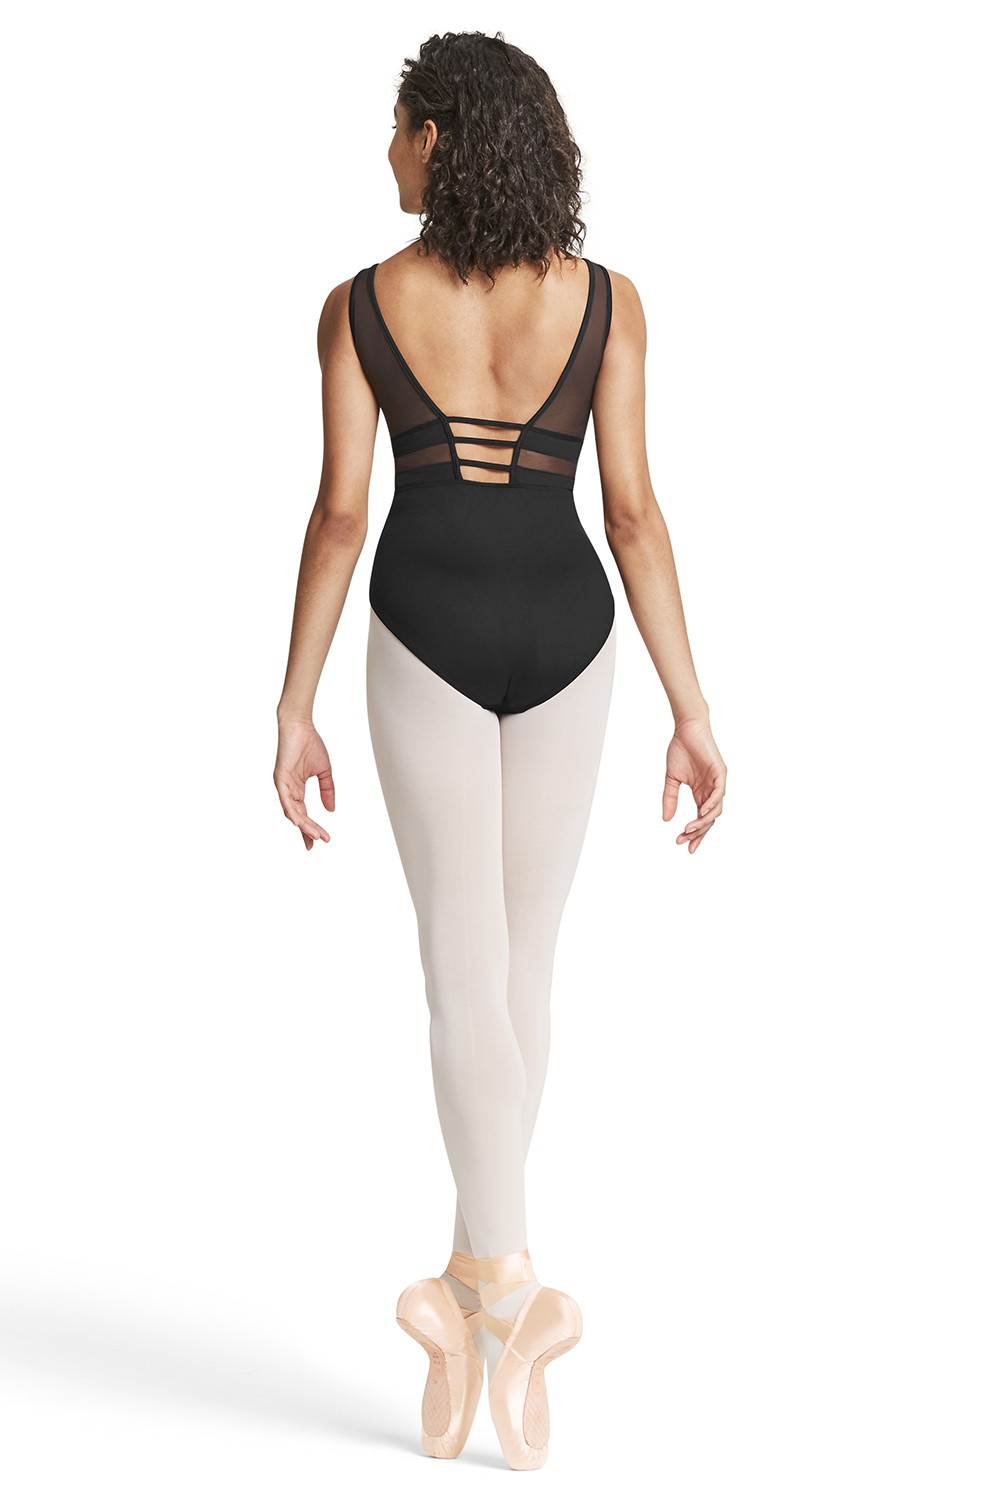 Low Back Tank Leotard Women's Dance Leotards